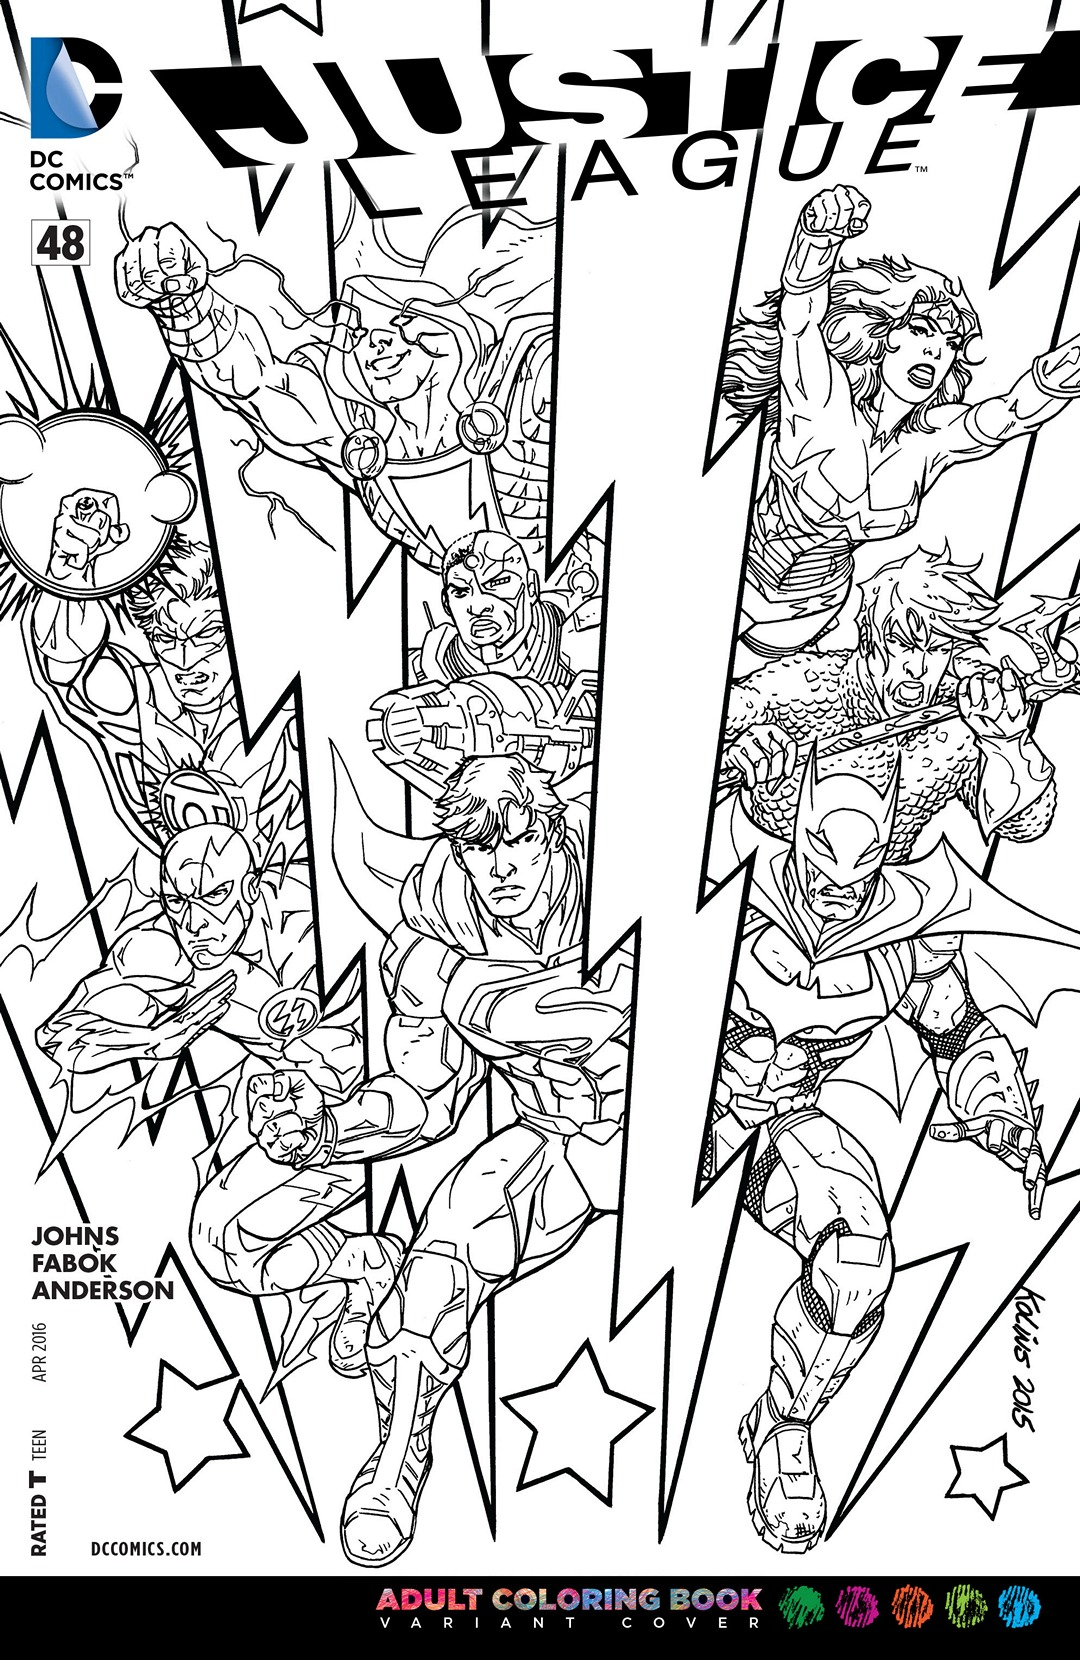 image justice league vol 2 48 coloring book variant jpg